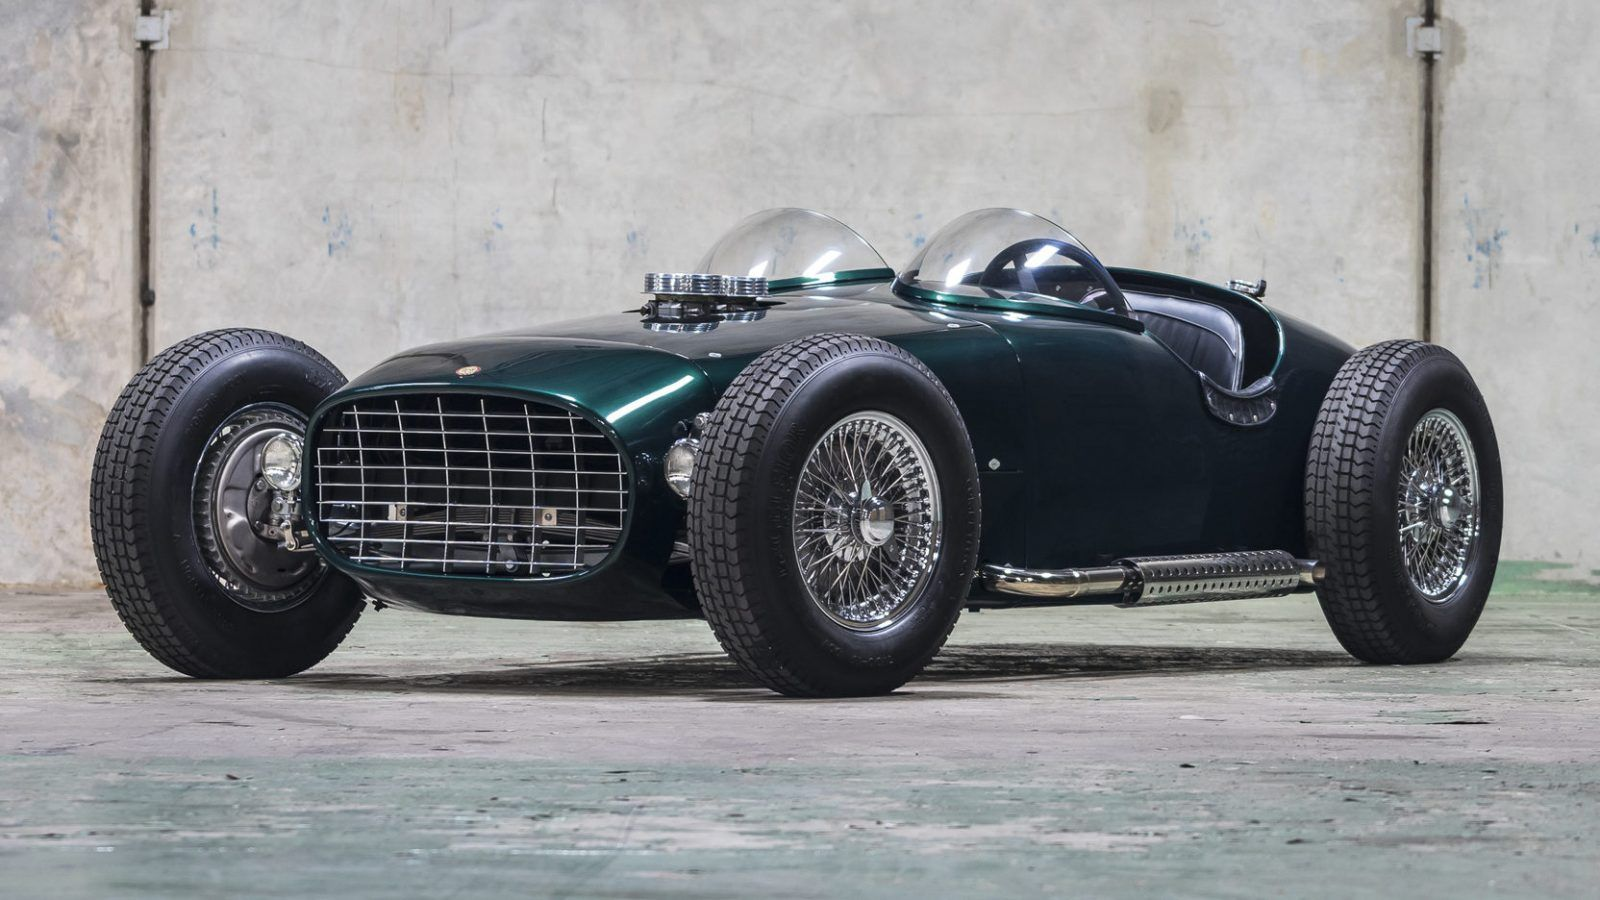 1959 Troy Custom Roadster | Troy, Cars and Design cars